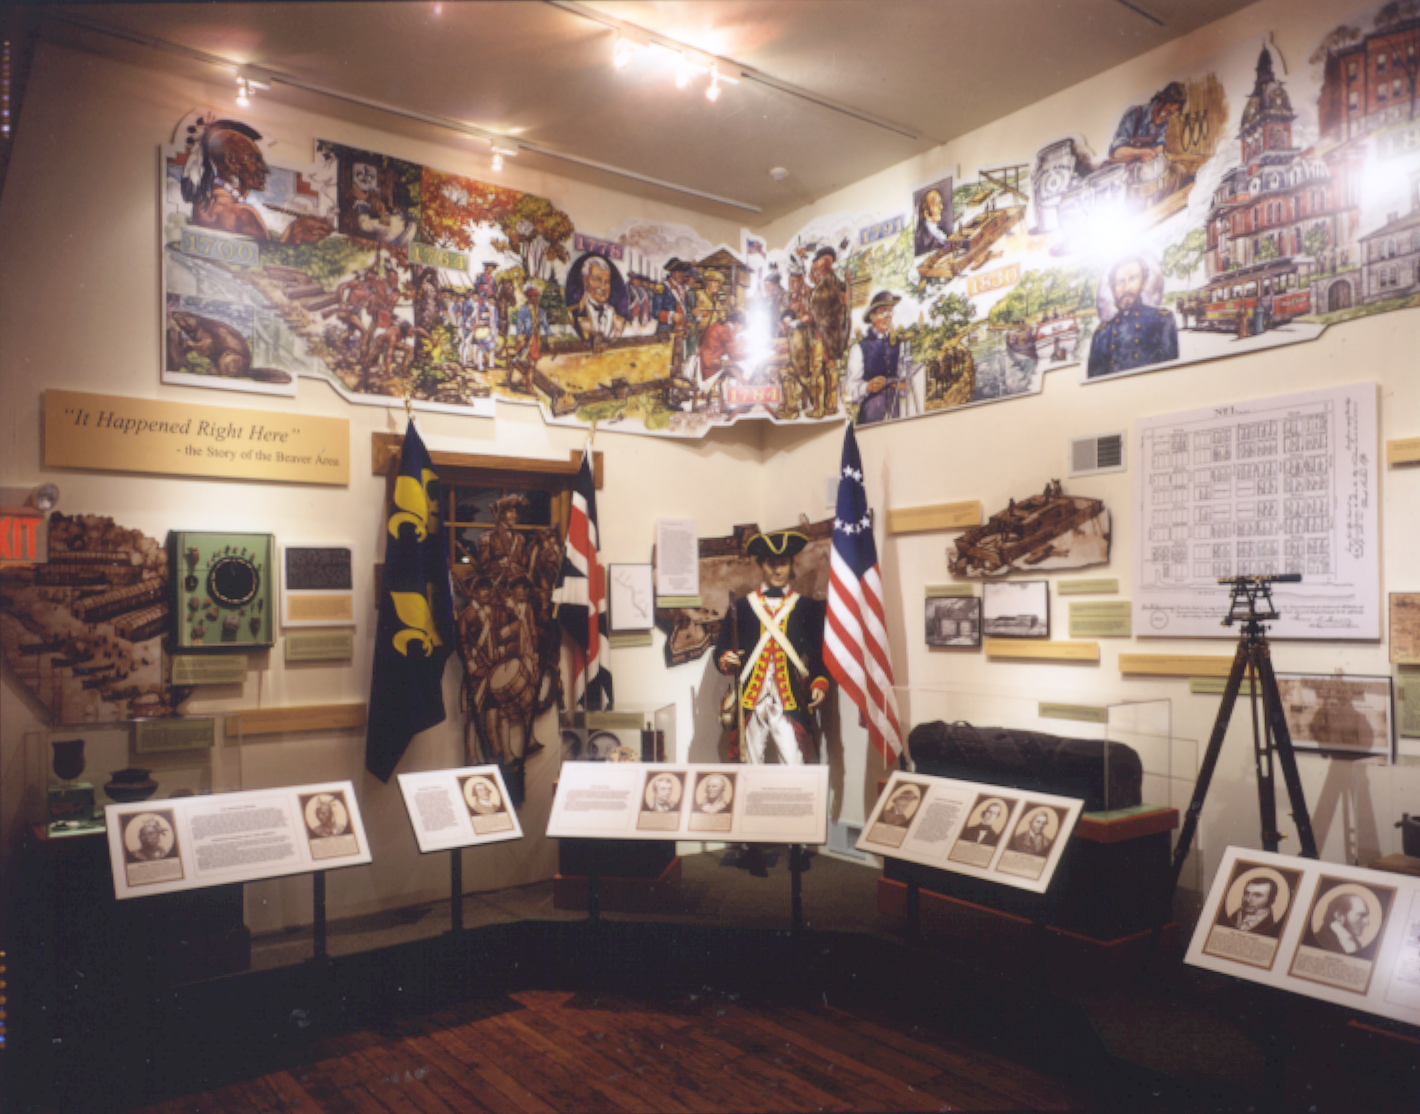 Interior of the Beaver Area Heritage Museum (photo courtesy of the Beaver Area Heritage Museum/Nicholas Traub)